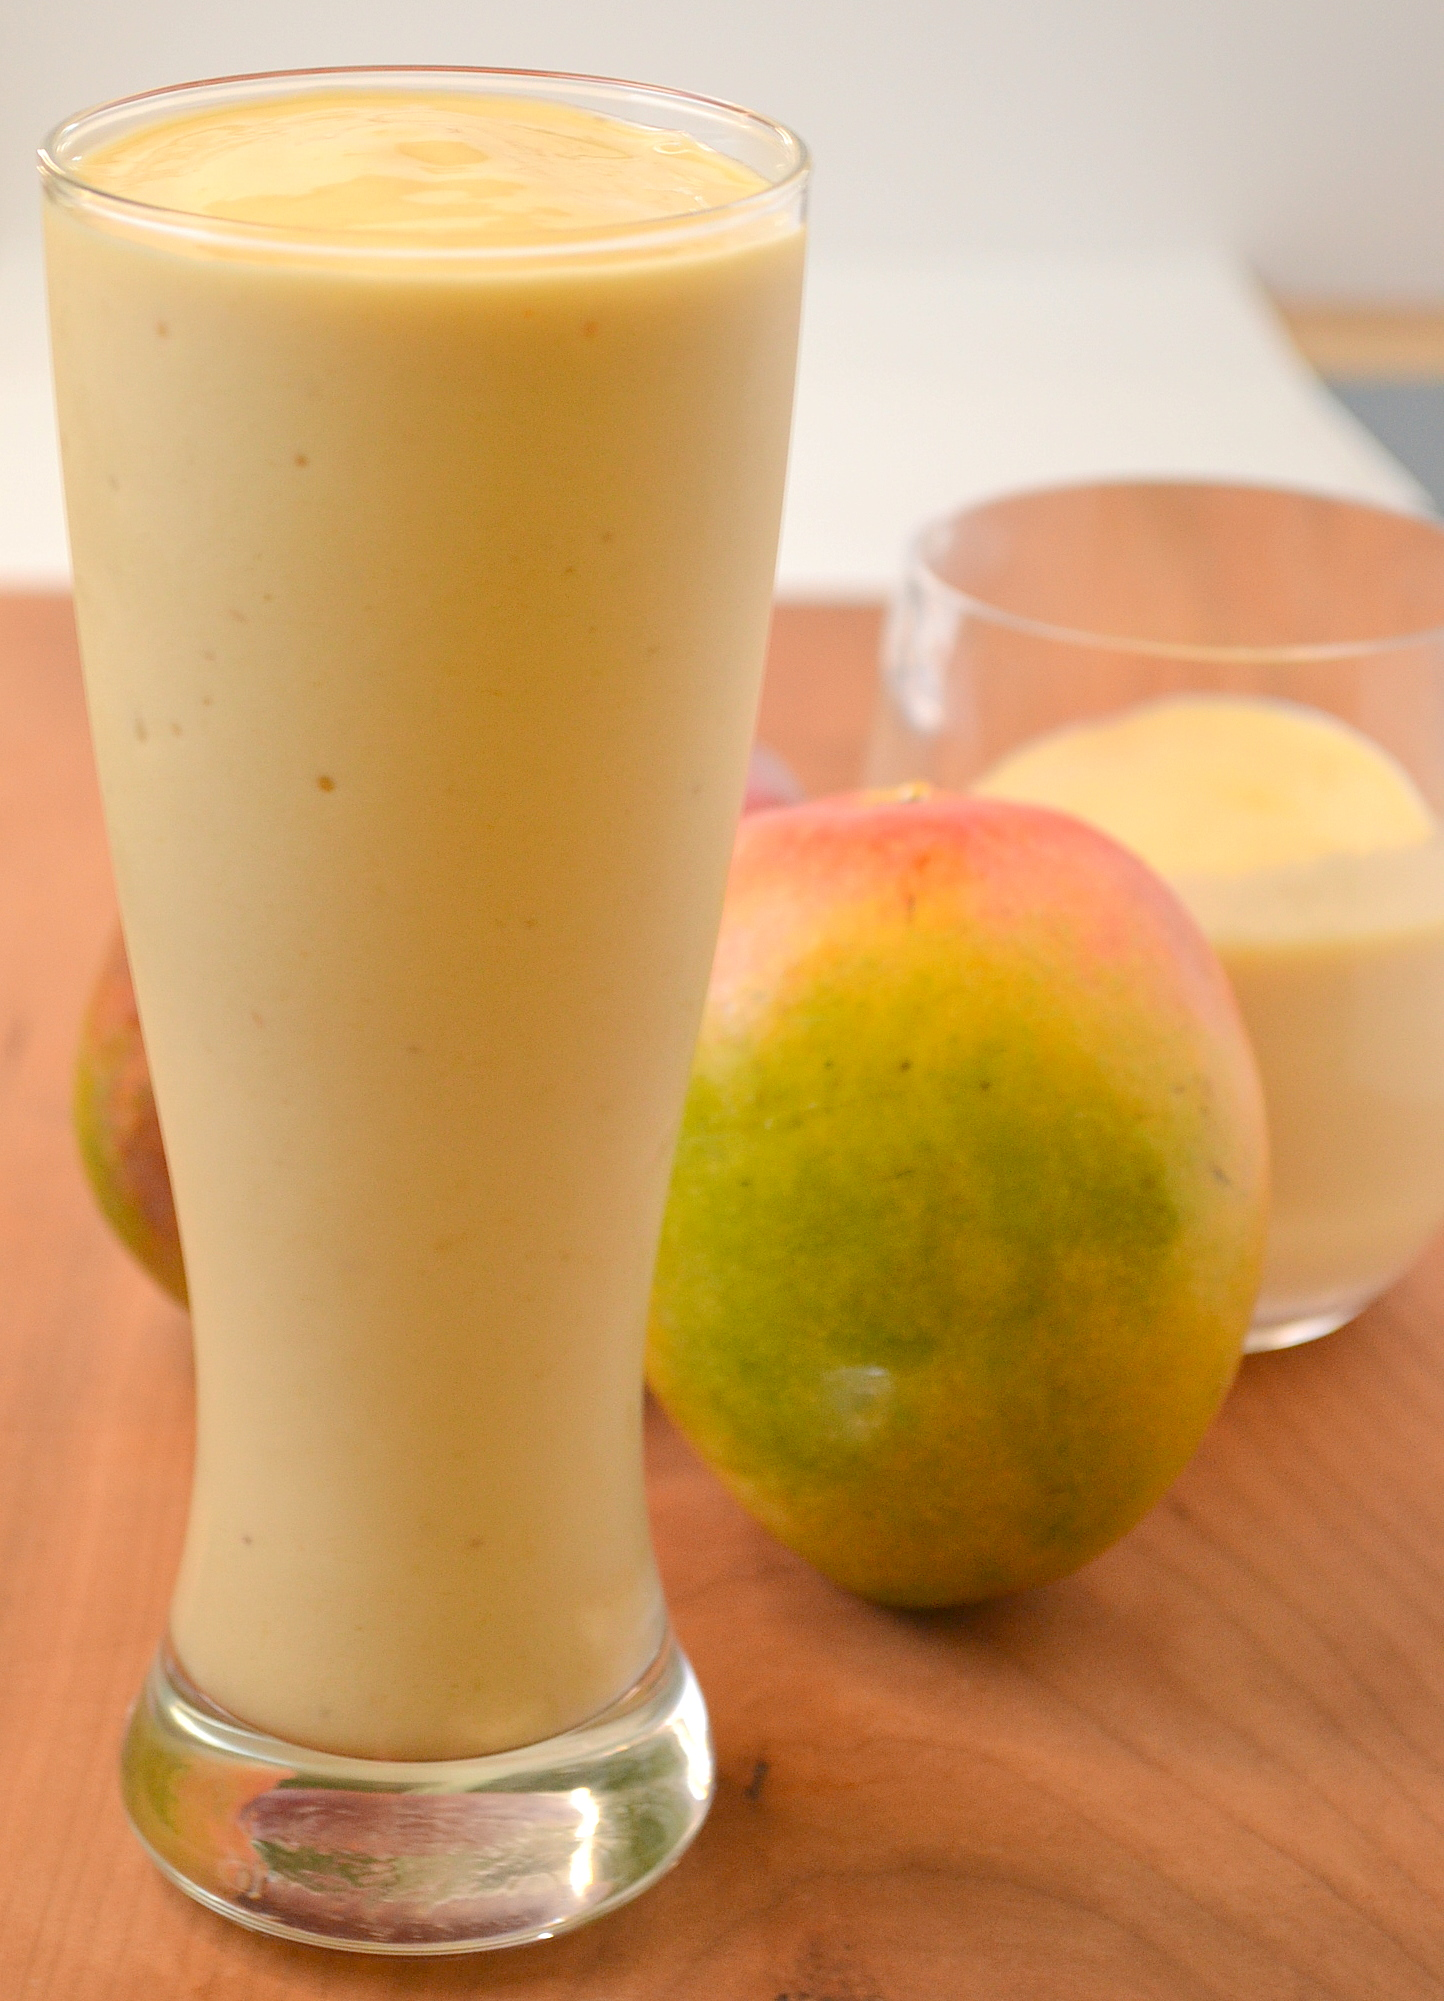 ... de mango enchilado mango mango taste of yellow smoothie your way